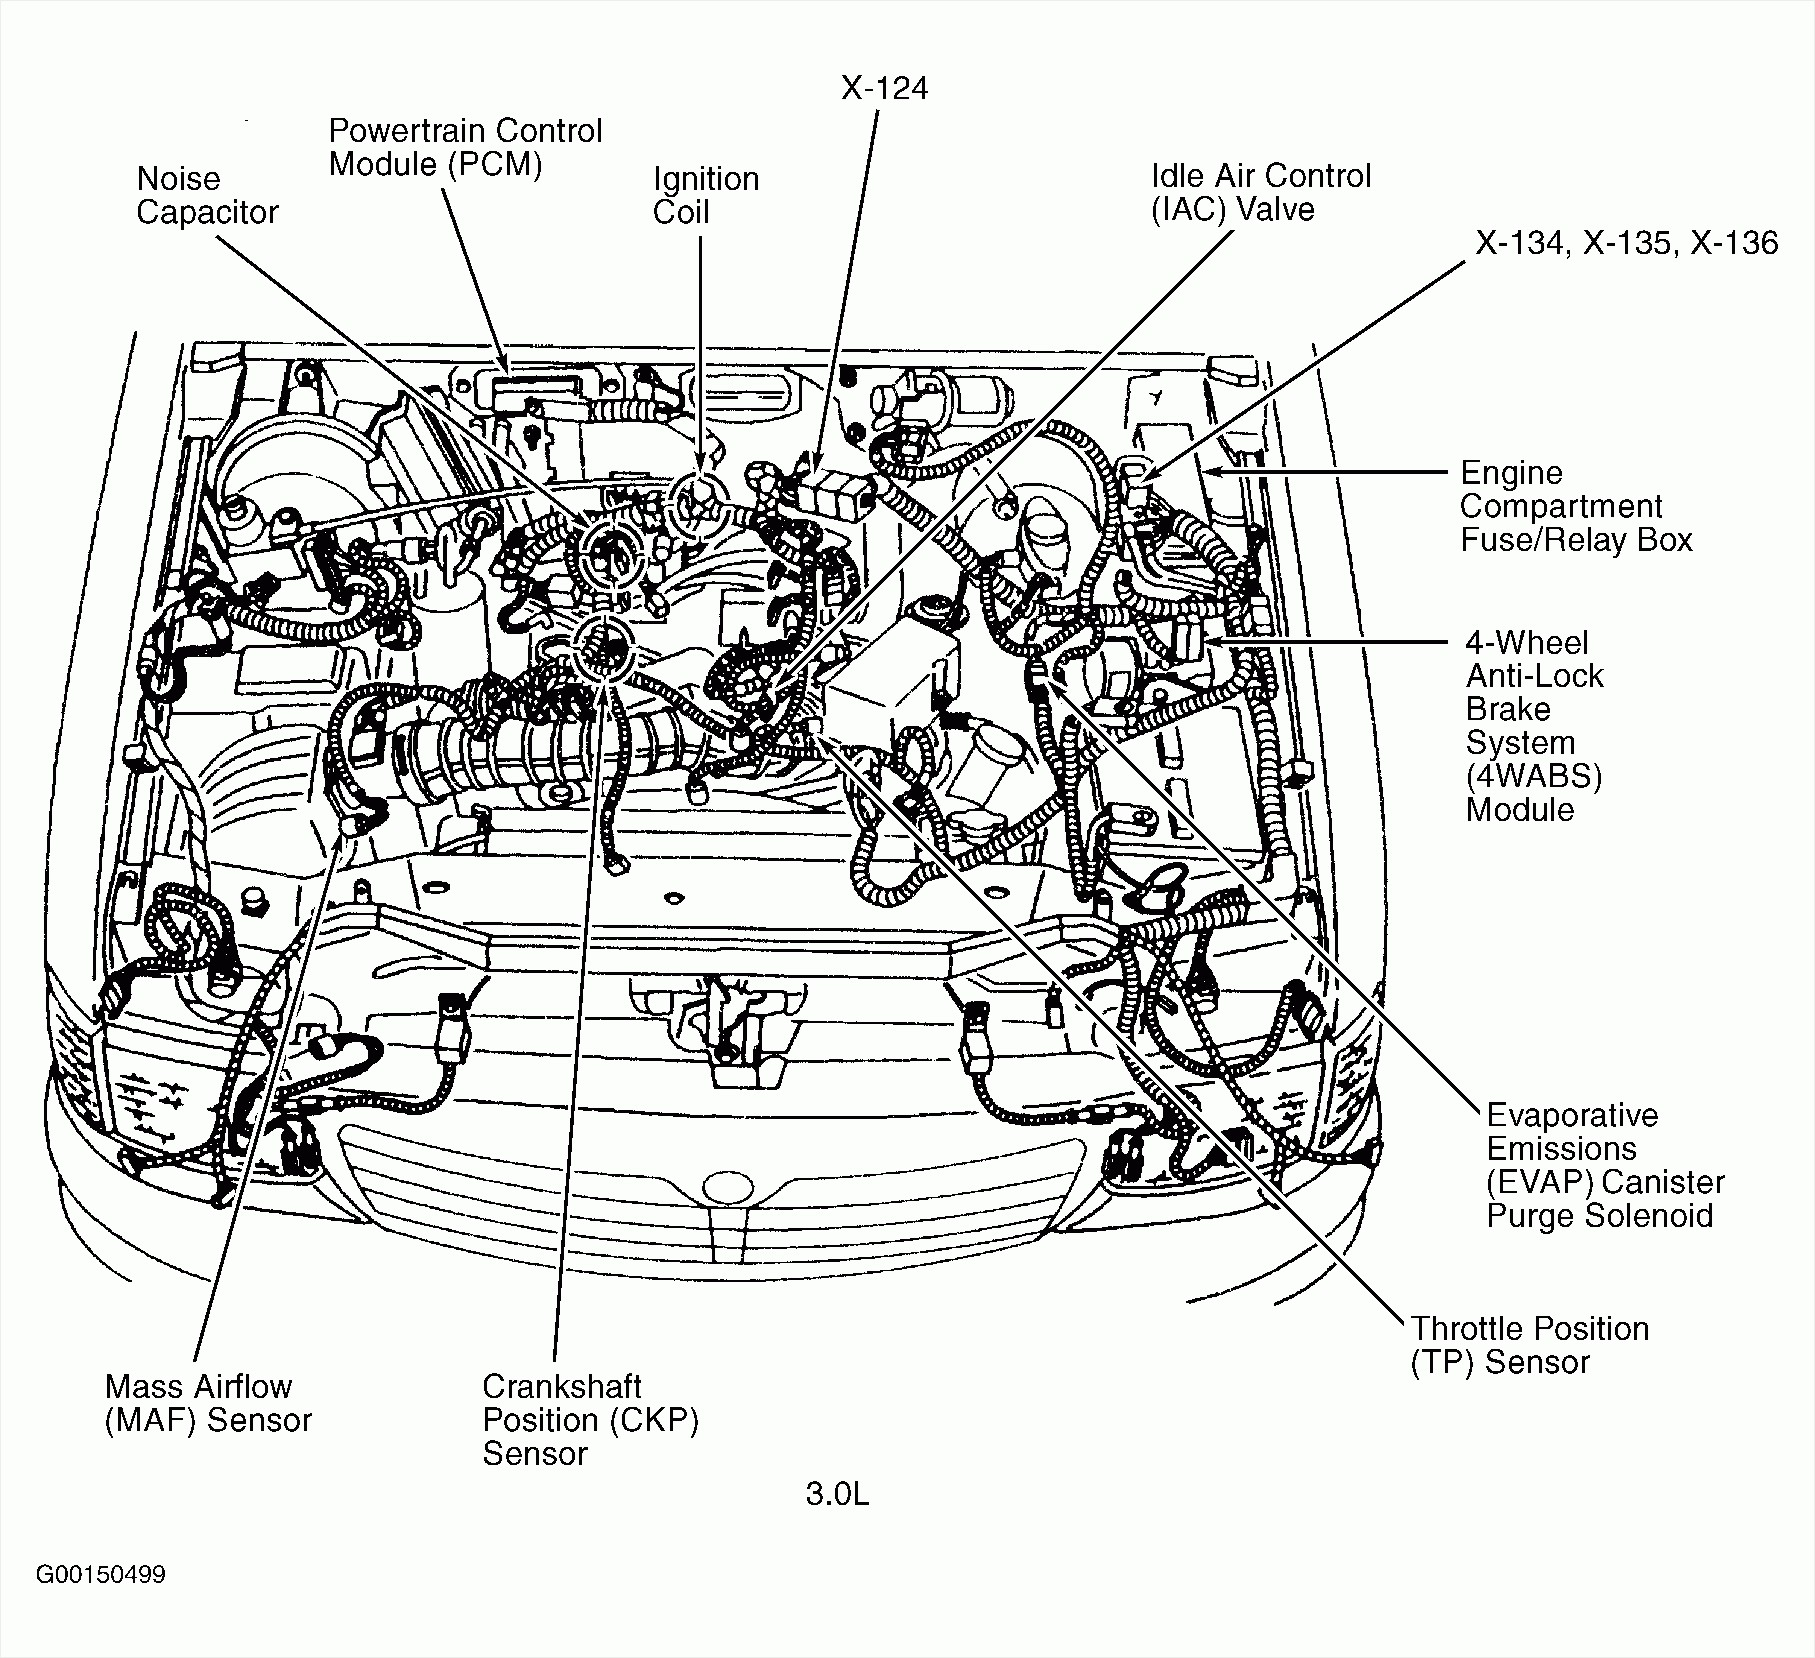 hight resolution of 97 4runner starter wiring diagram wiring diagram toolbox4runner starter wiring diagram wiring diagram inside 97 4runner